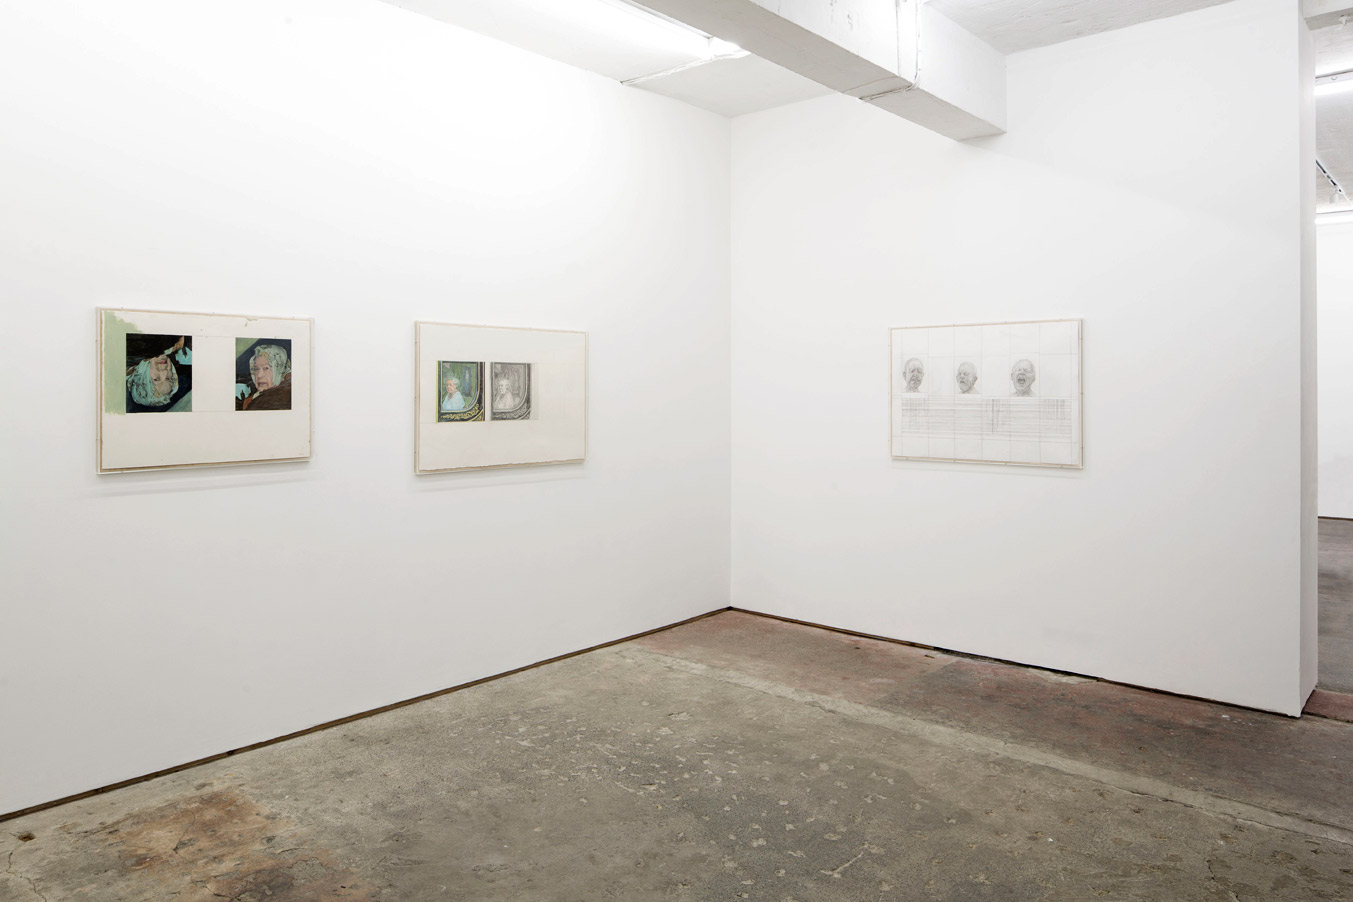 Stuart Brisley: Recent Paintings from the Museum of Ordure at Lungley gallery, London. Install